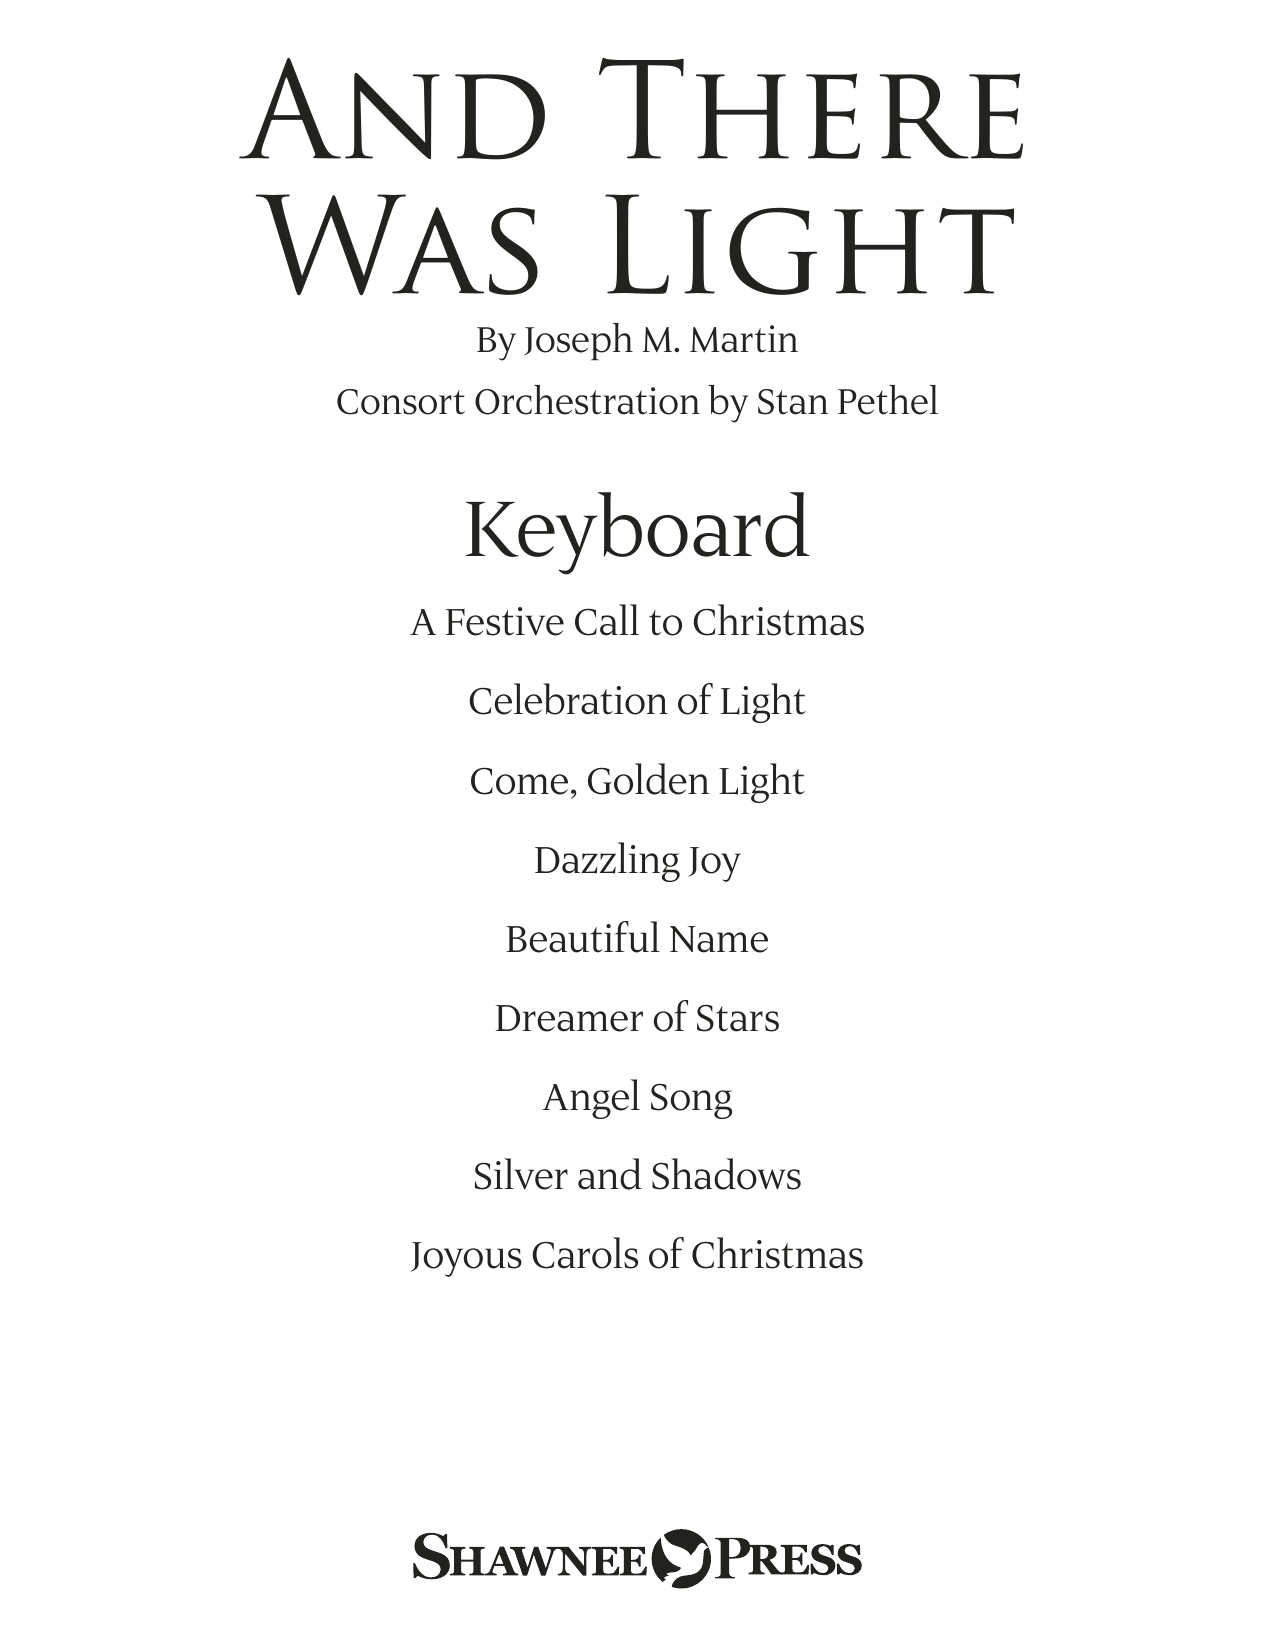 Joseph M. Martin And There Was Light - Keyboard sheet music notes and chords. Download Printable PDF.